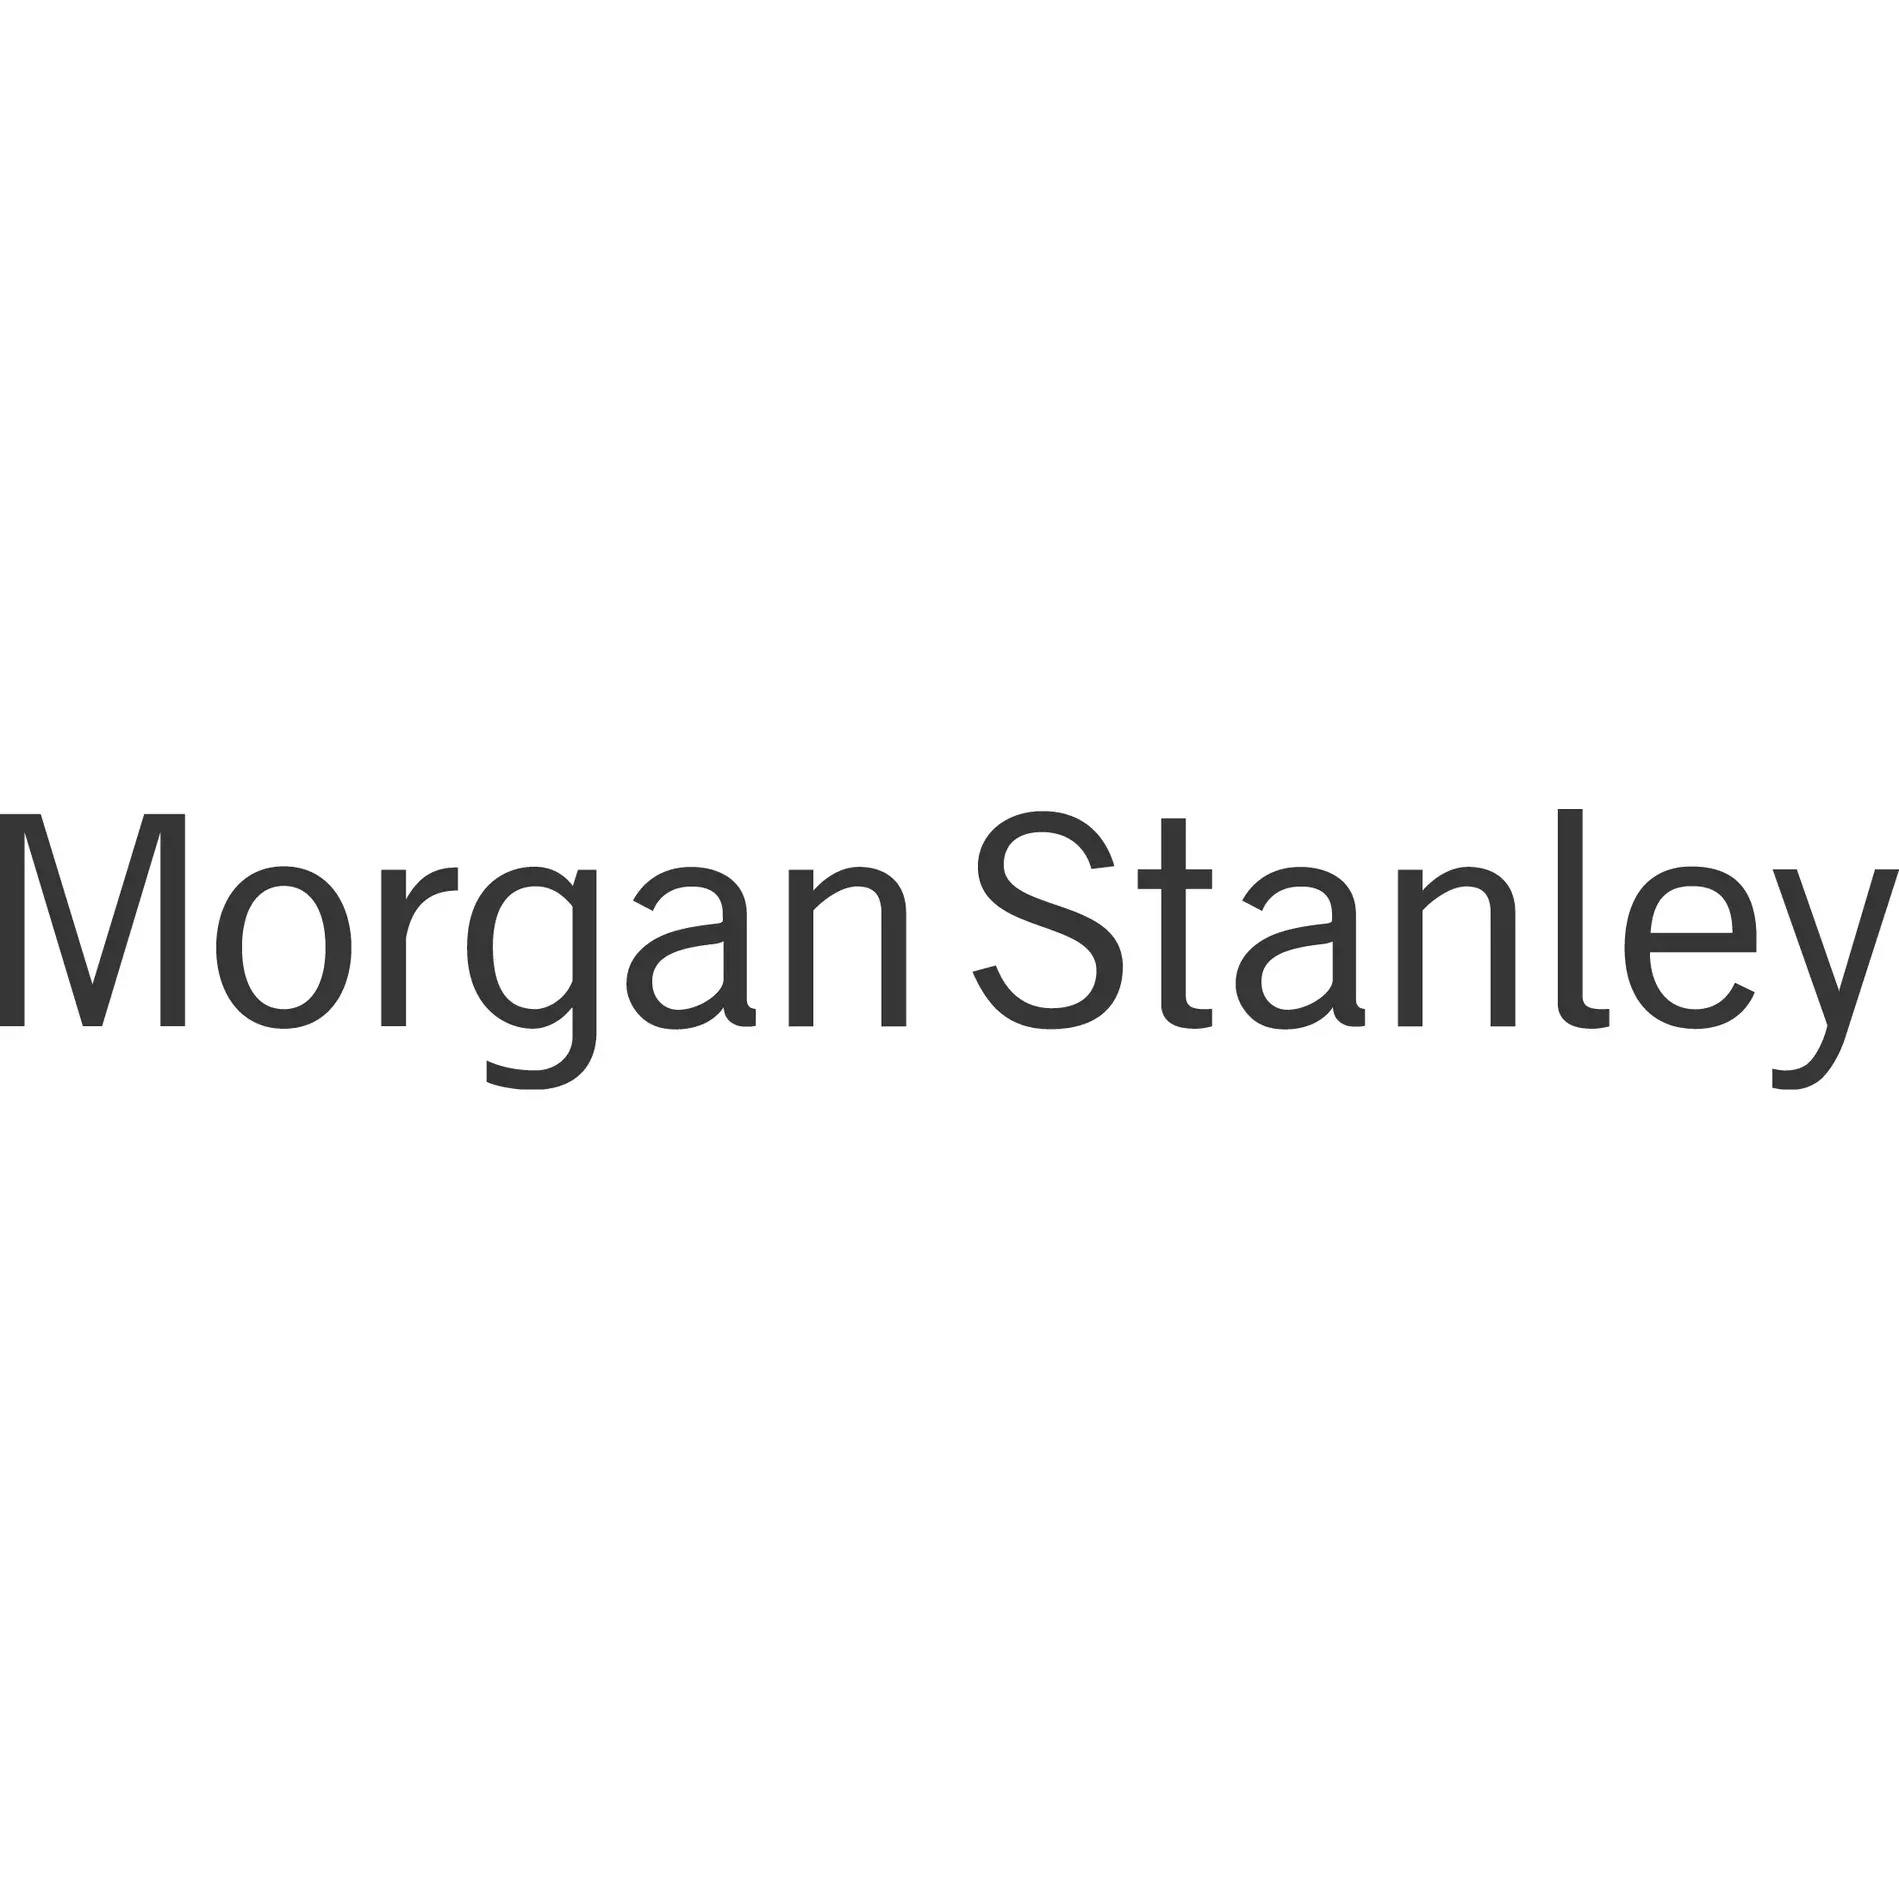 Anthony Chuck - Morgan Stanley